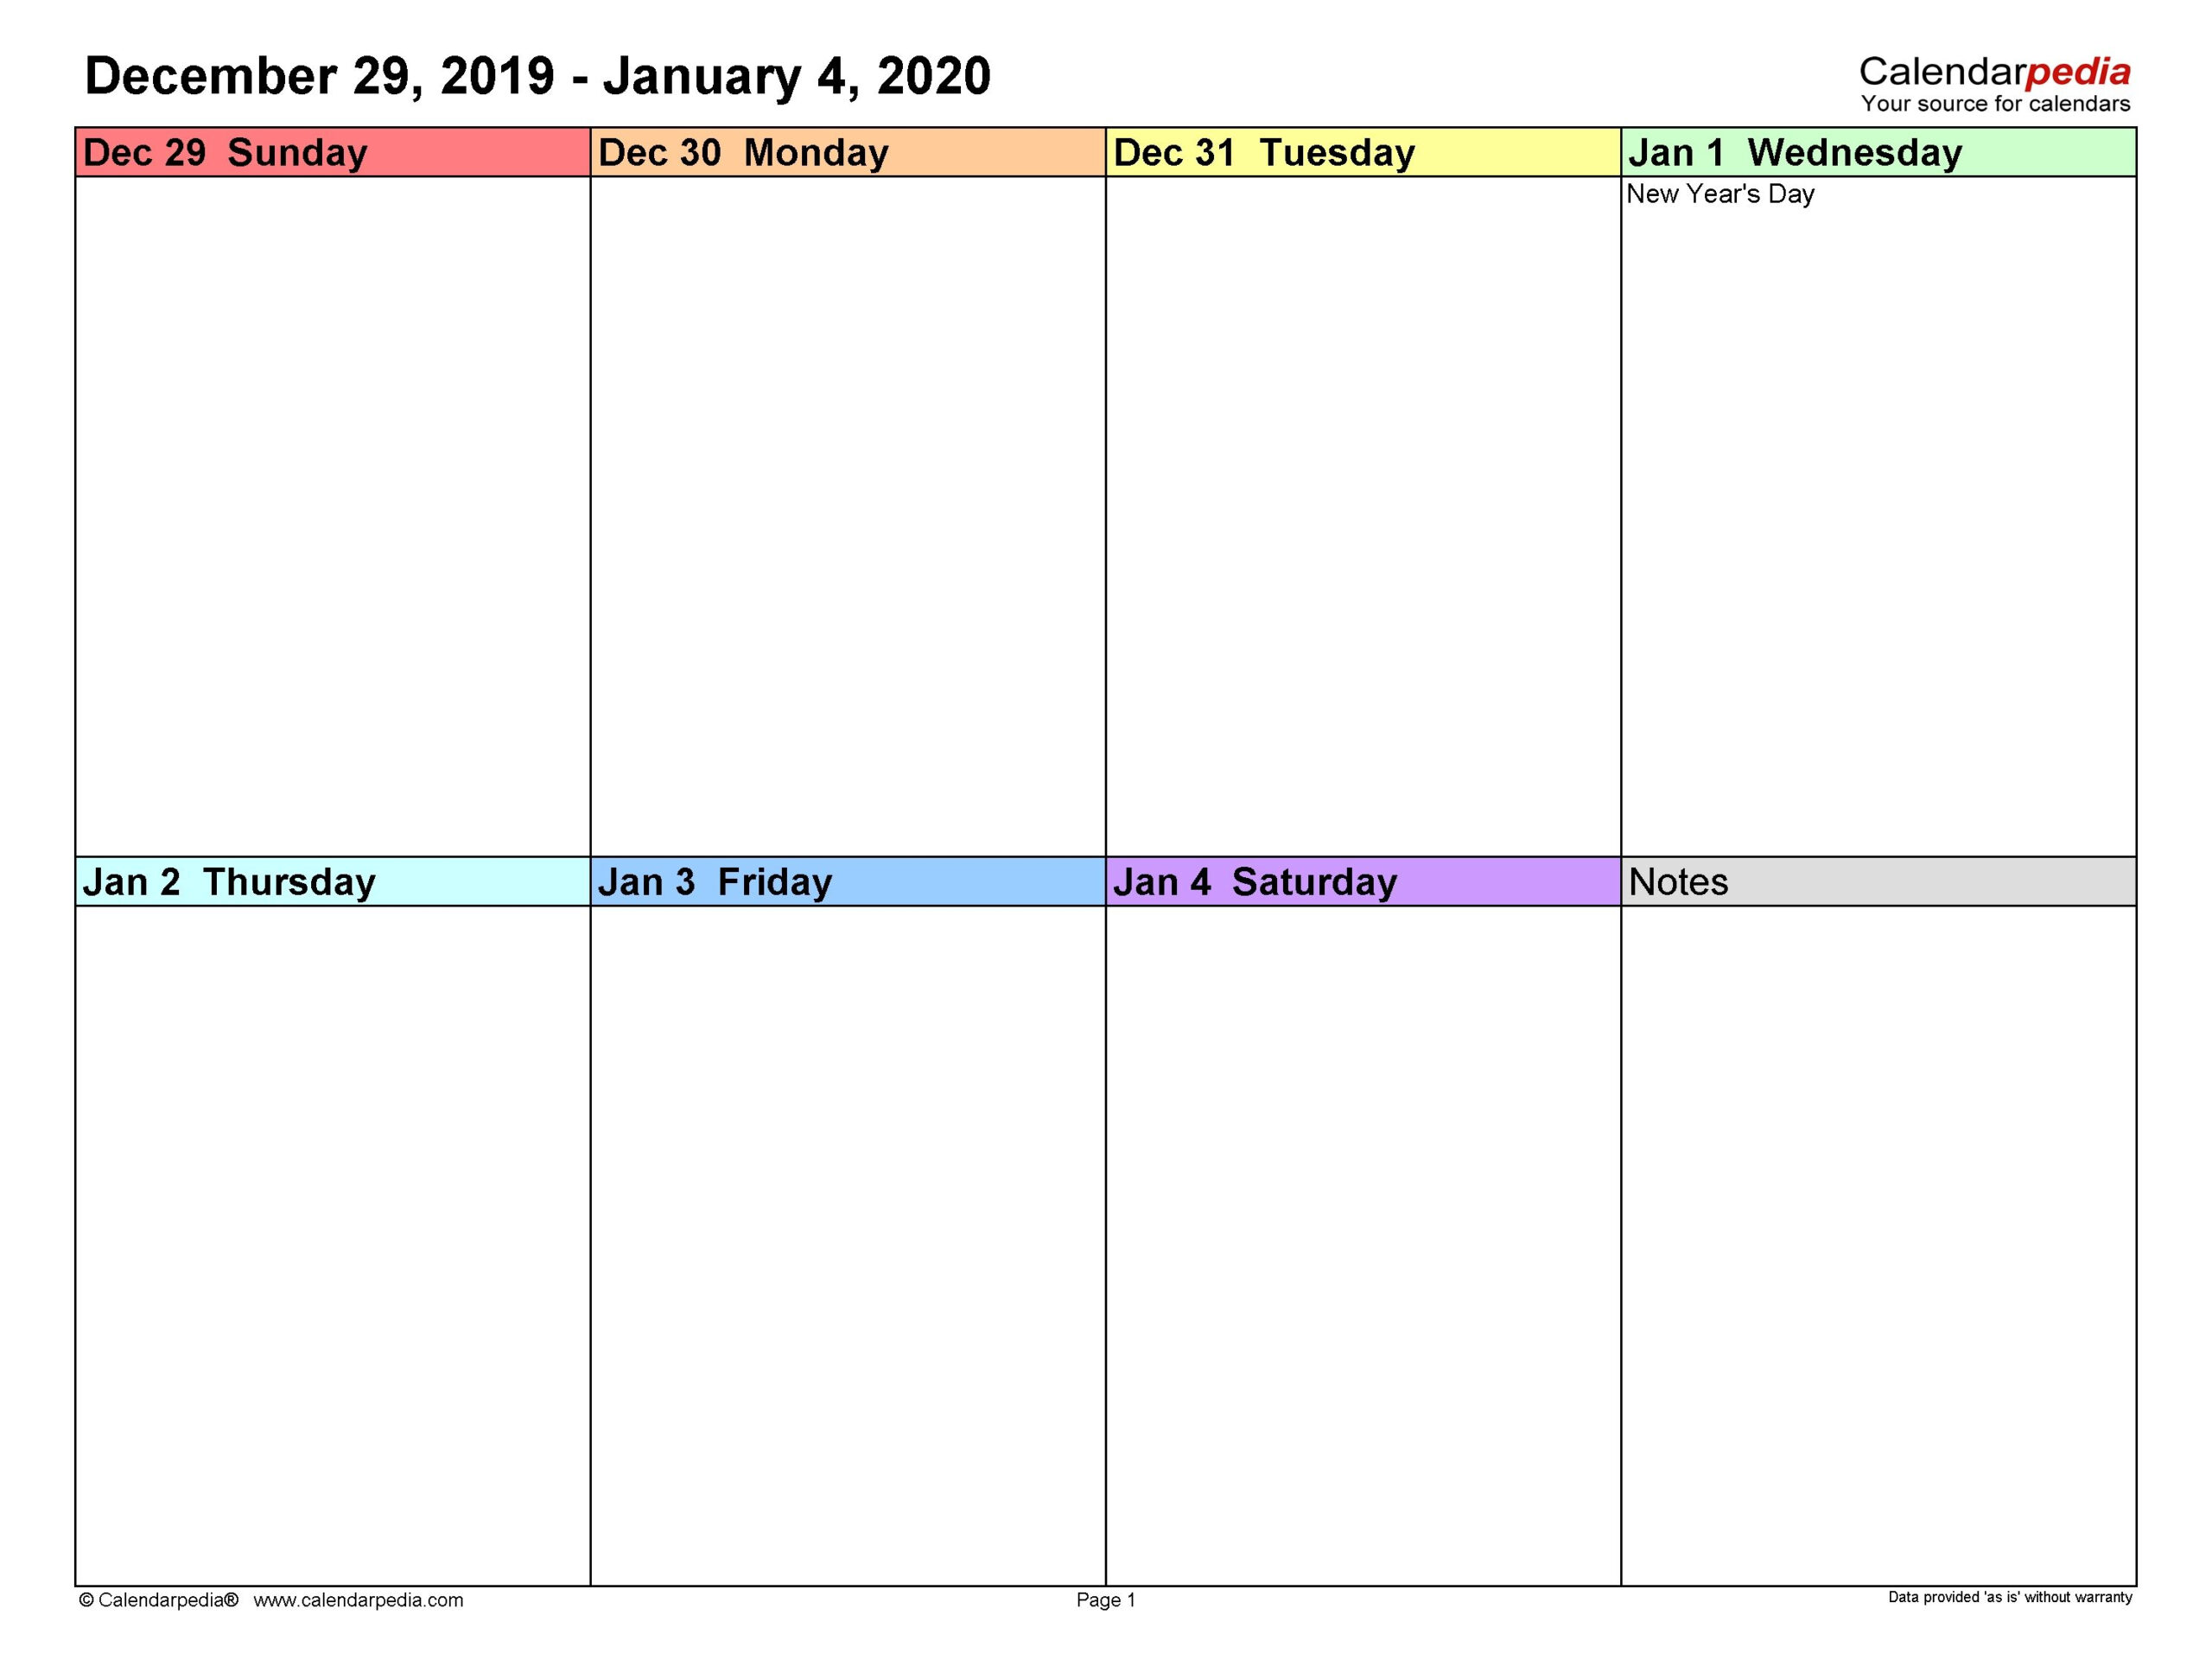 Universal Blank 2 Week Calendar In 2020 | Weekly Calendar throughout 2 Week Calander